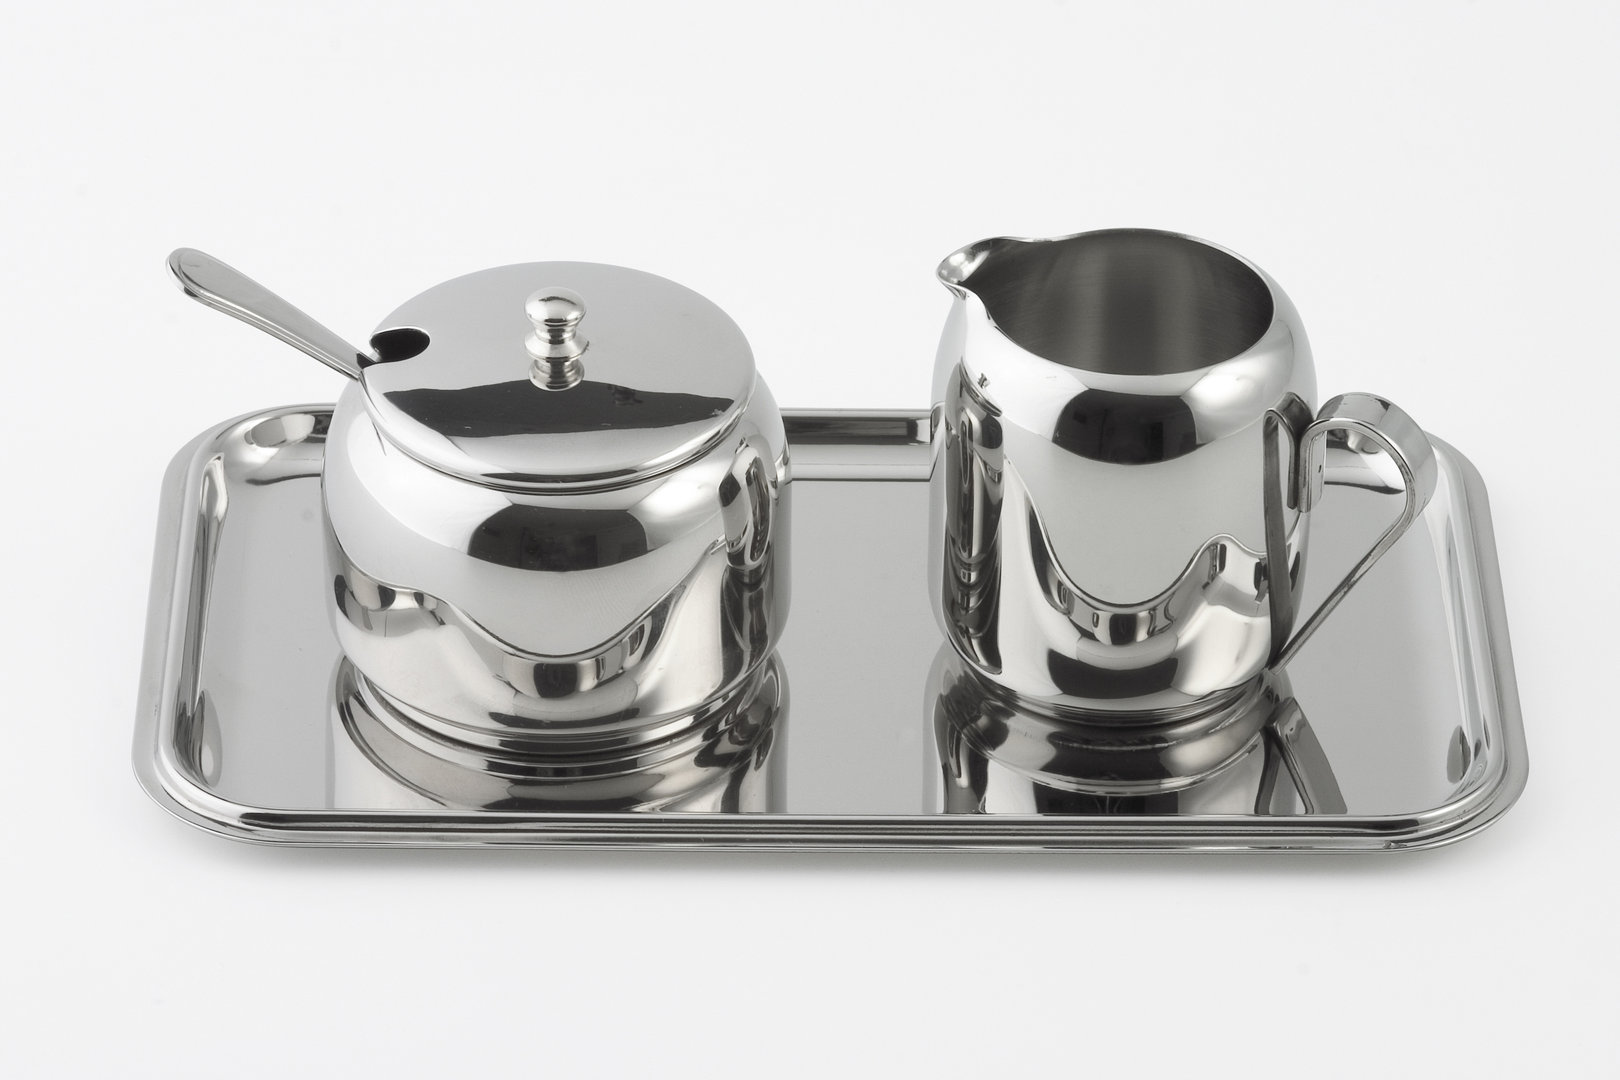 sugar and creamer set with tray   stainless steel highly  - sugar and creamer set with tray   stainless steel highly polished